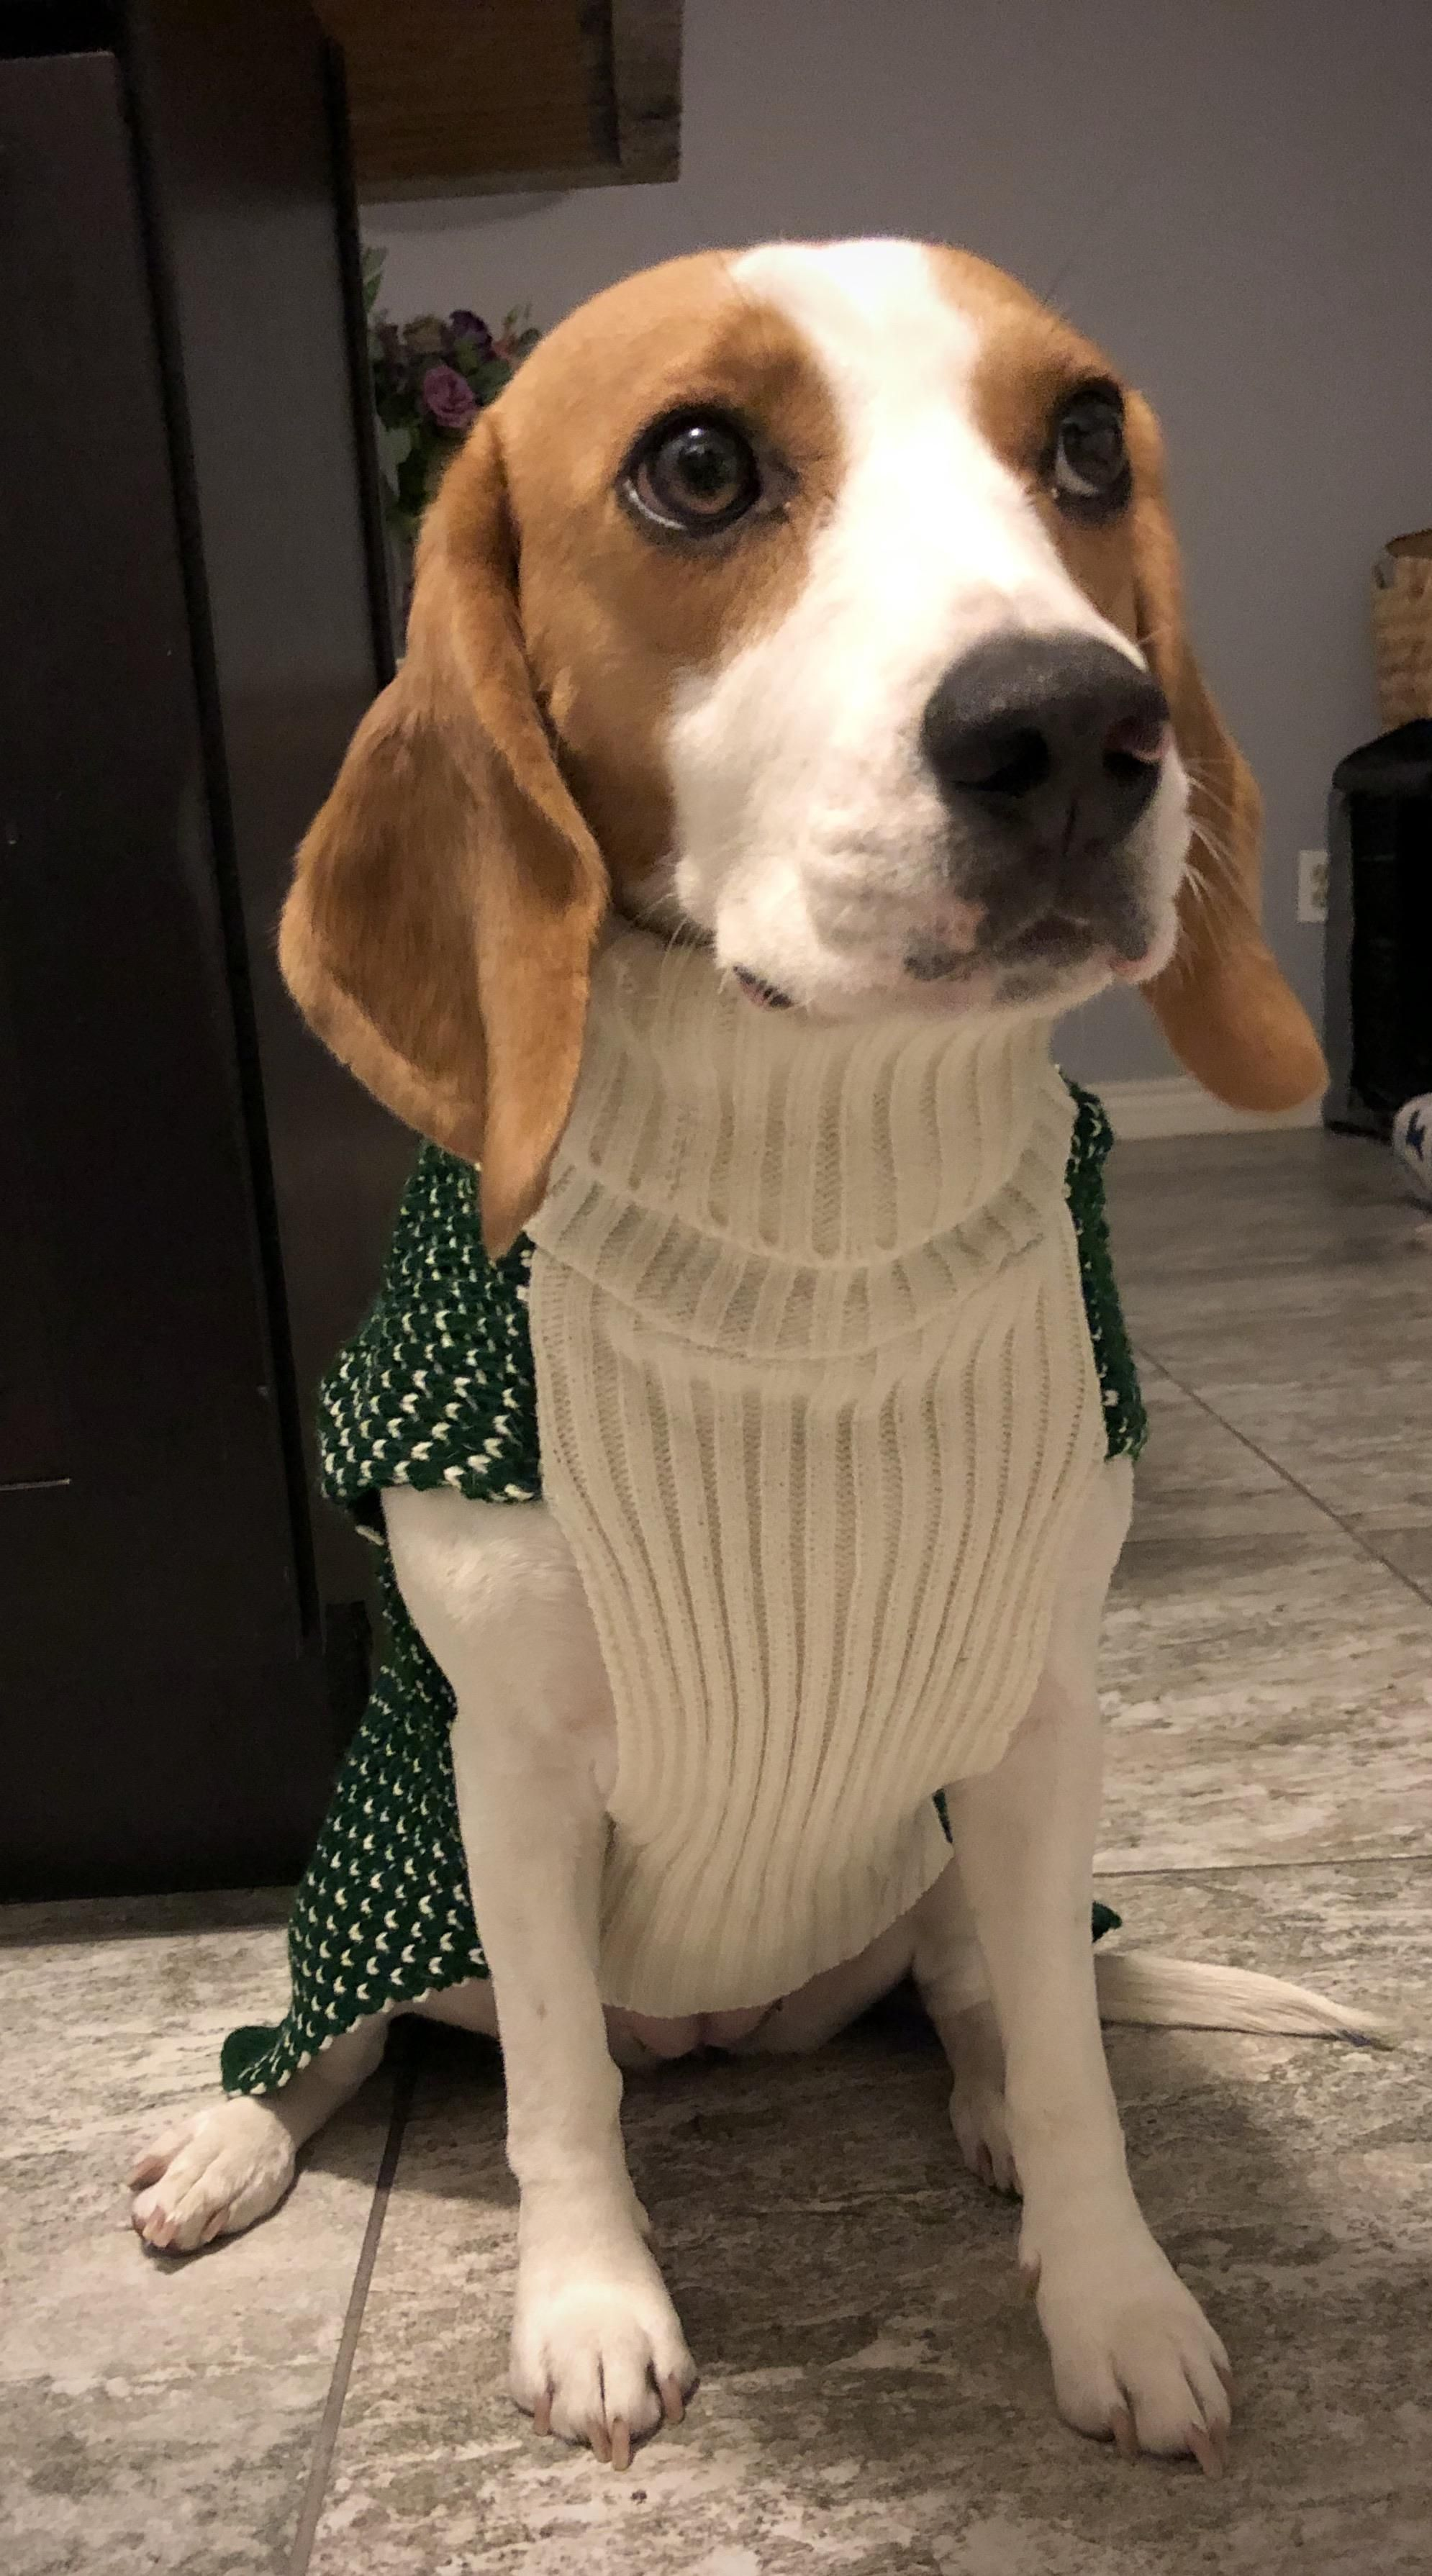 Its Sweater Weather And She Hates It Https Ift Tt 2sn8whj